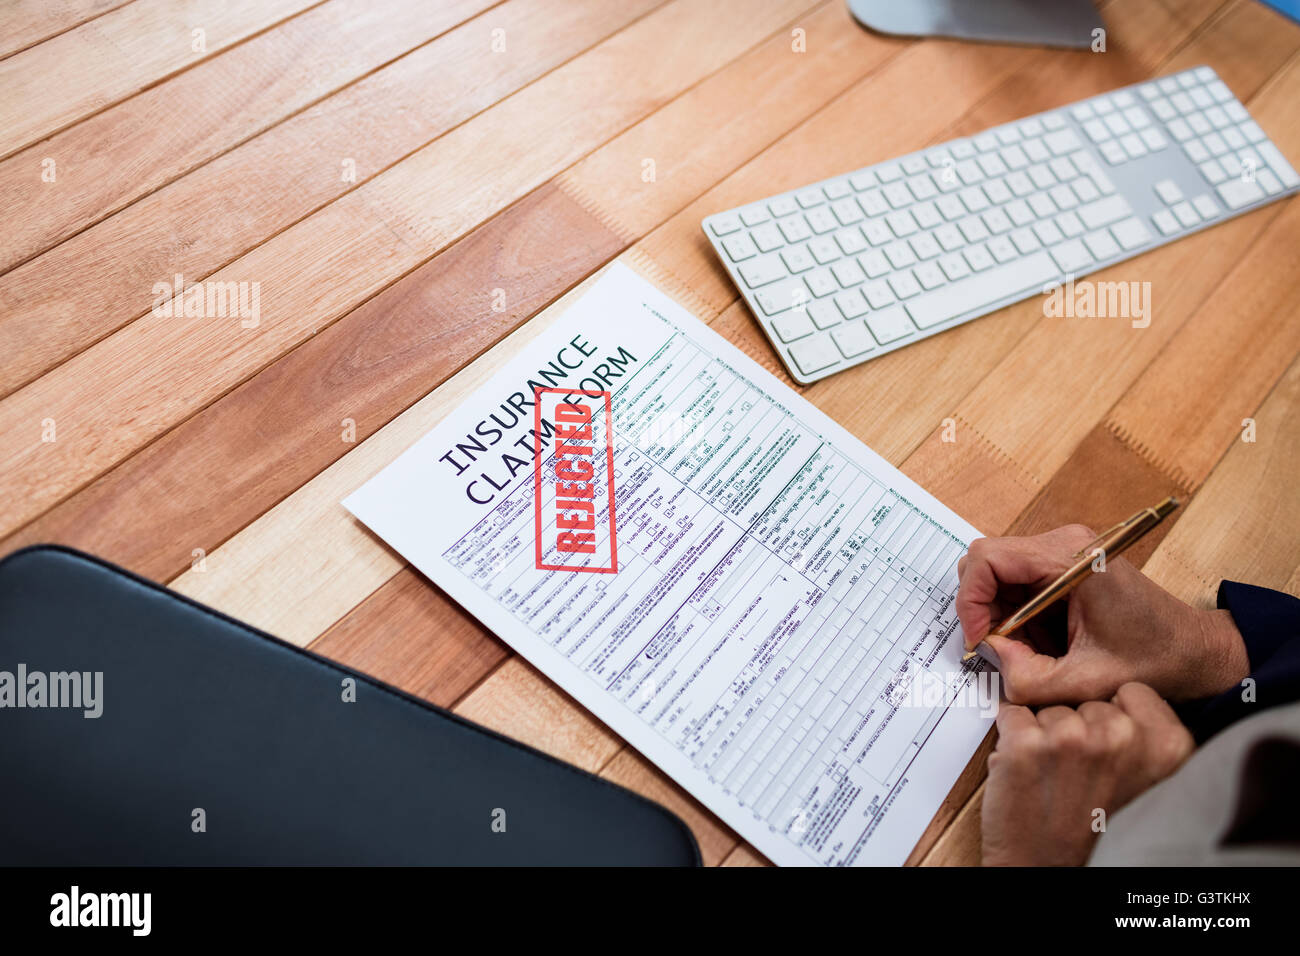 Hand writing on an insurance claim form - Stock Image